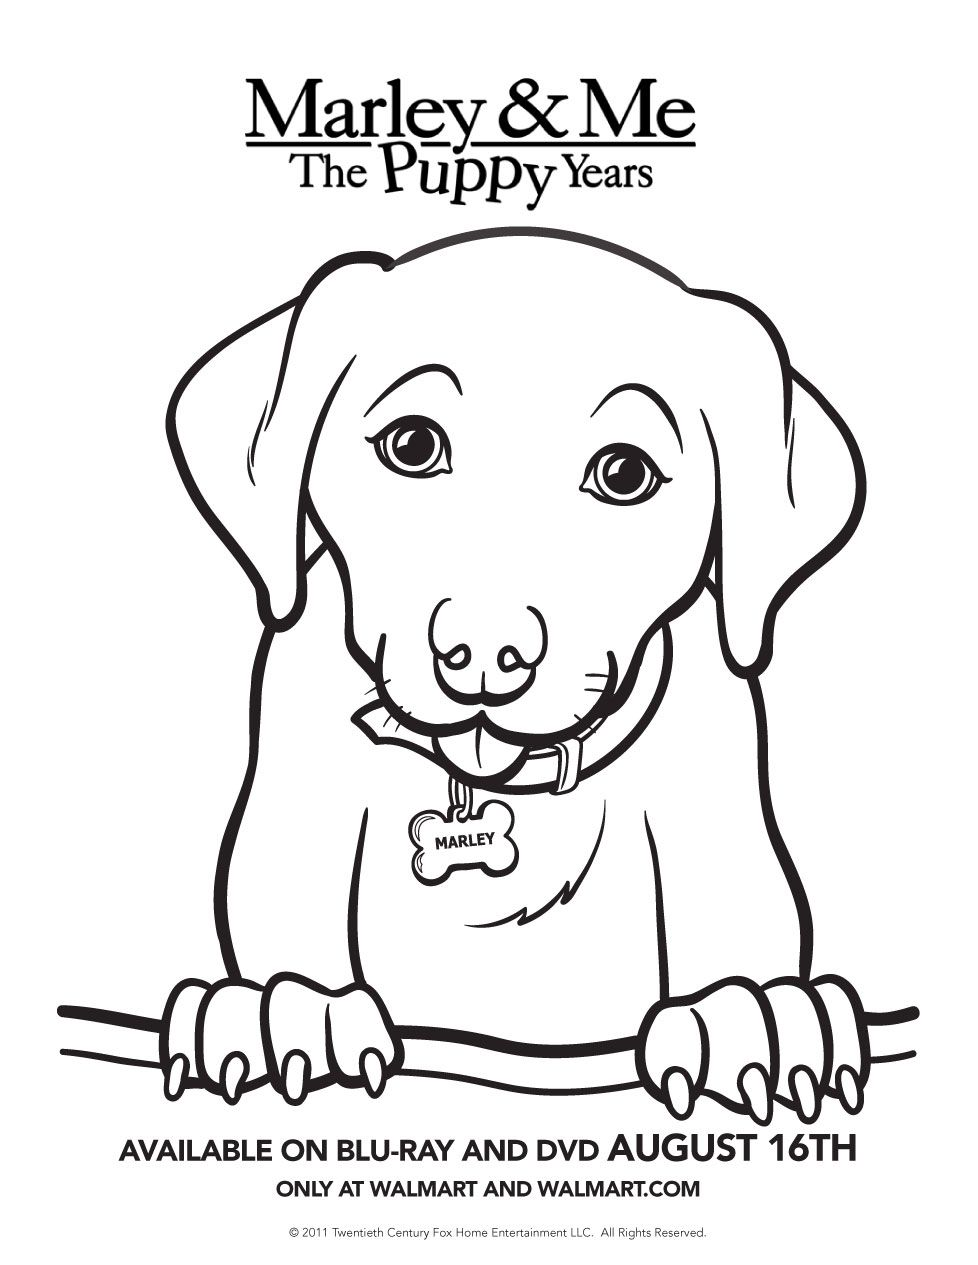 baby puppy coloring pages Baby Puppy Coloring Pages |  The Puppy Years Printable Activity  baby puppy coloring pages